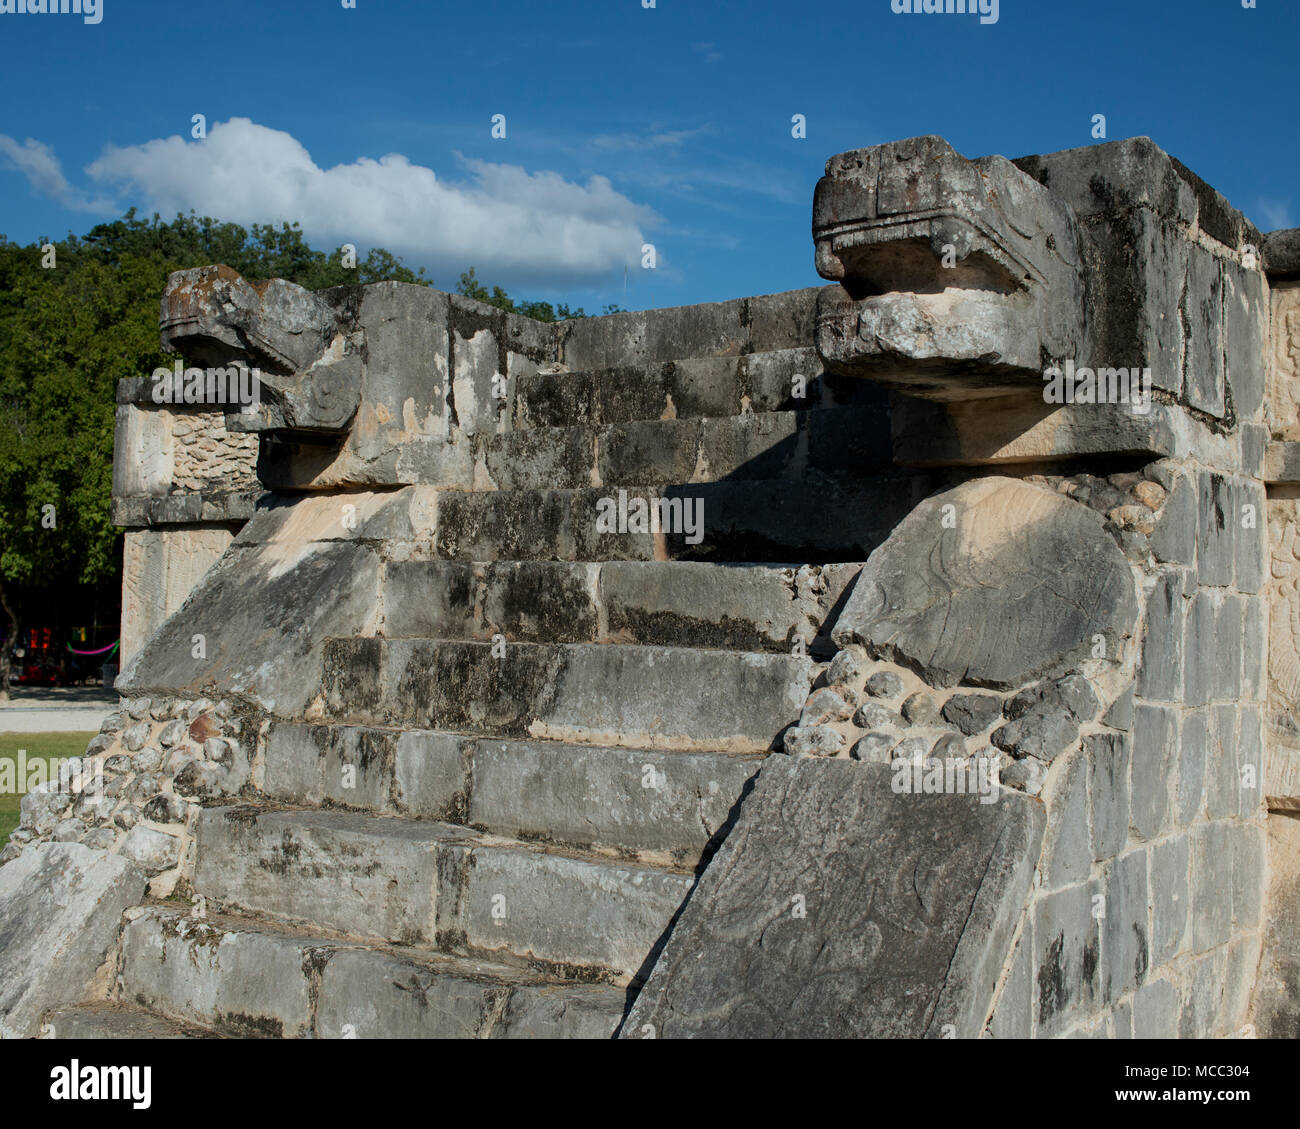 The feathered serpent  Kukulkan at Chichén Itzá, Yucatán State, Mexico was a Maya deity. - Stock Image